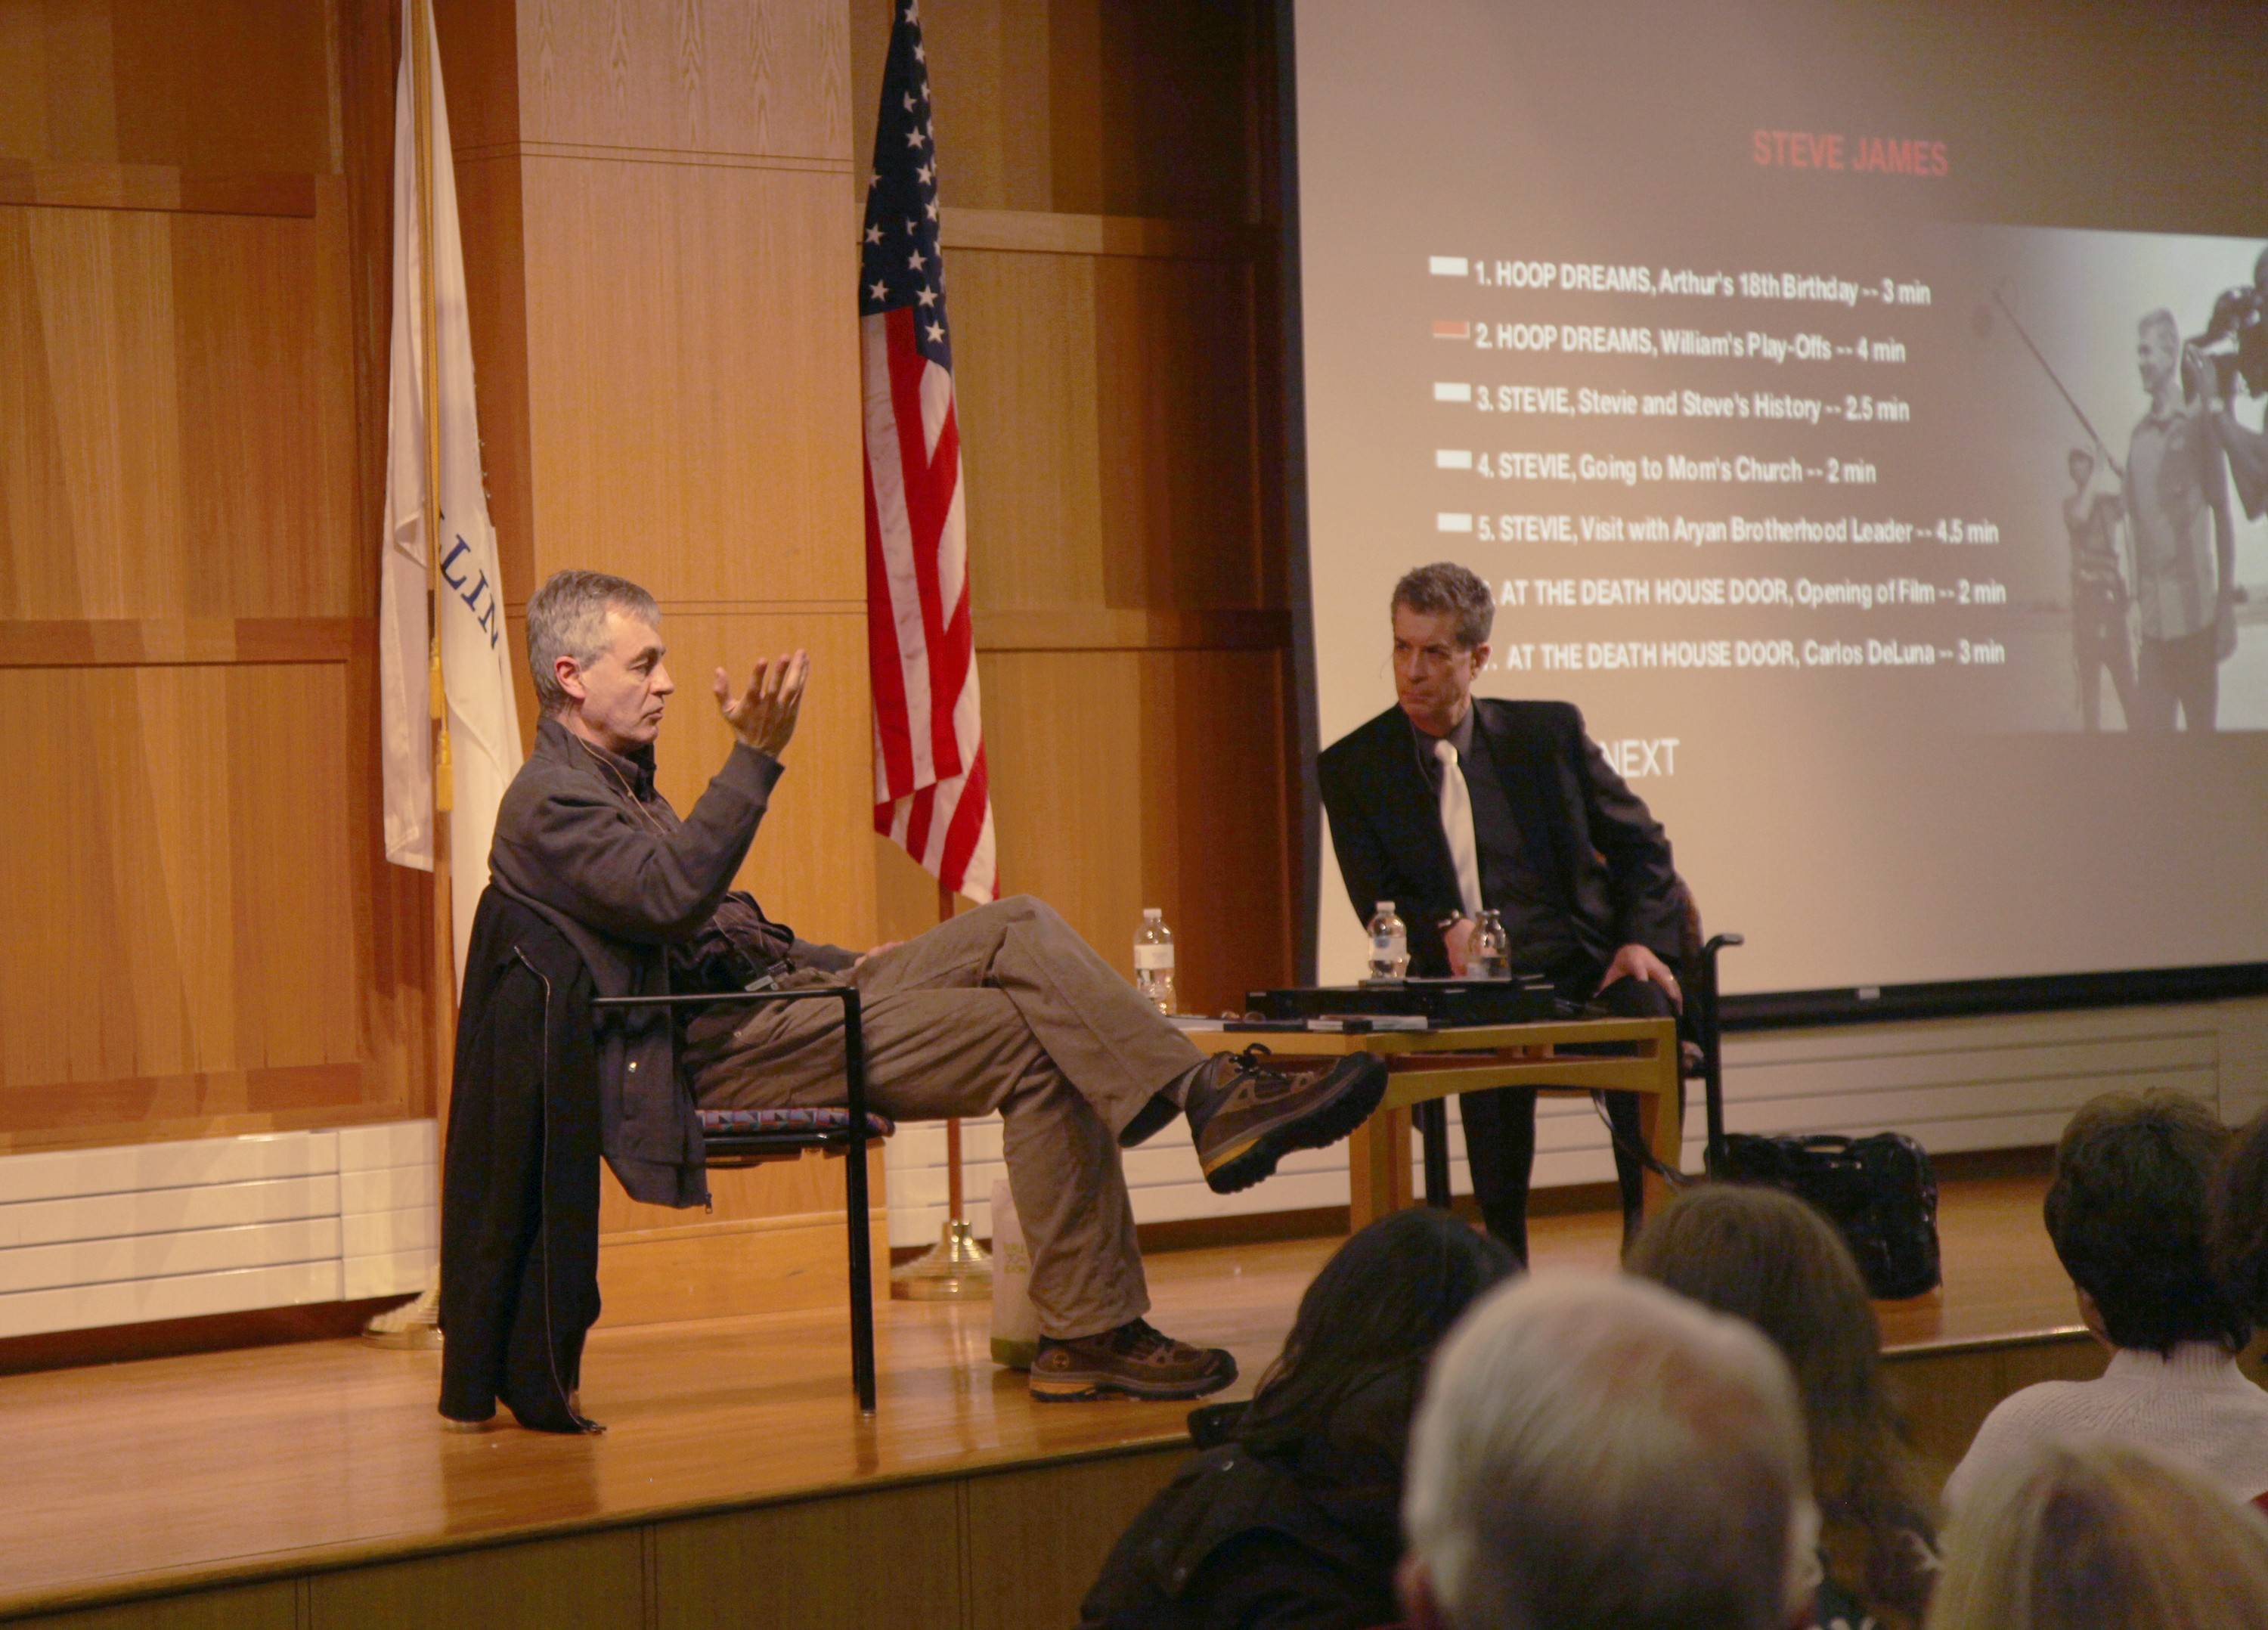 Documentary filmmaker Steve James, left, with Dann Gire, at the Arlington Heights Memorial Library.